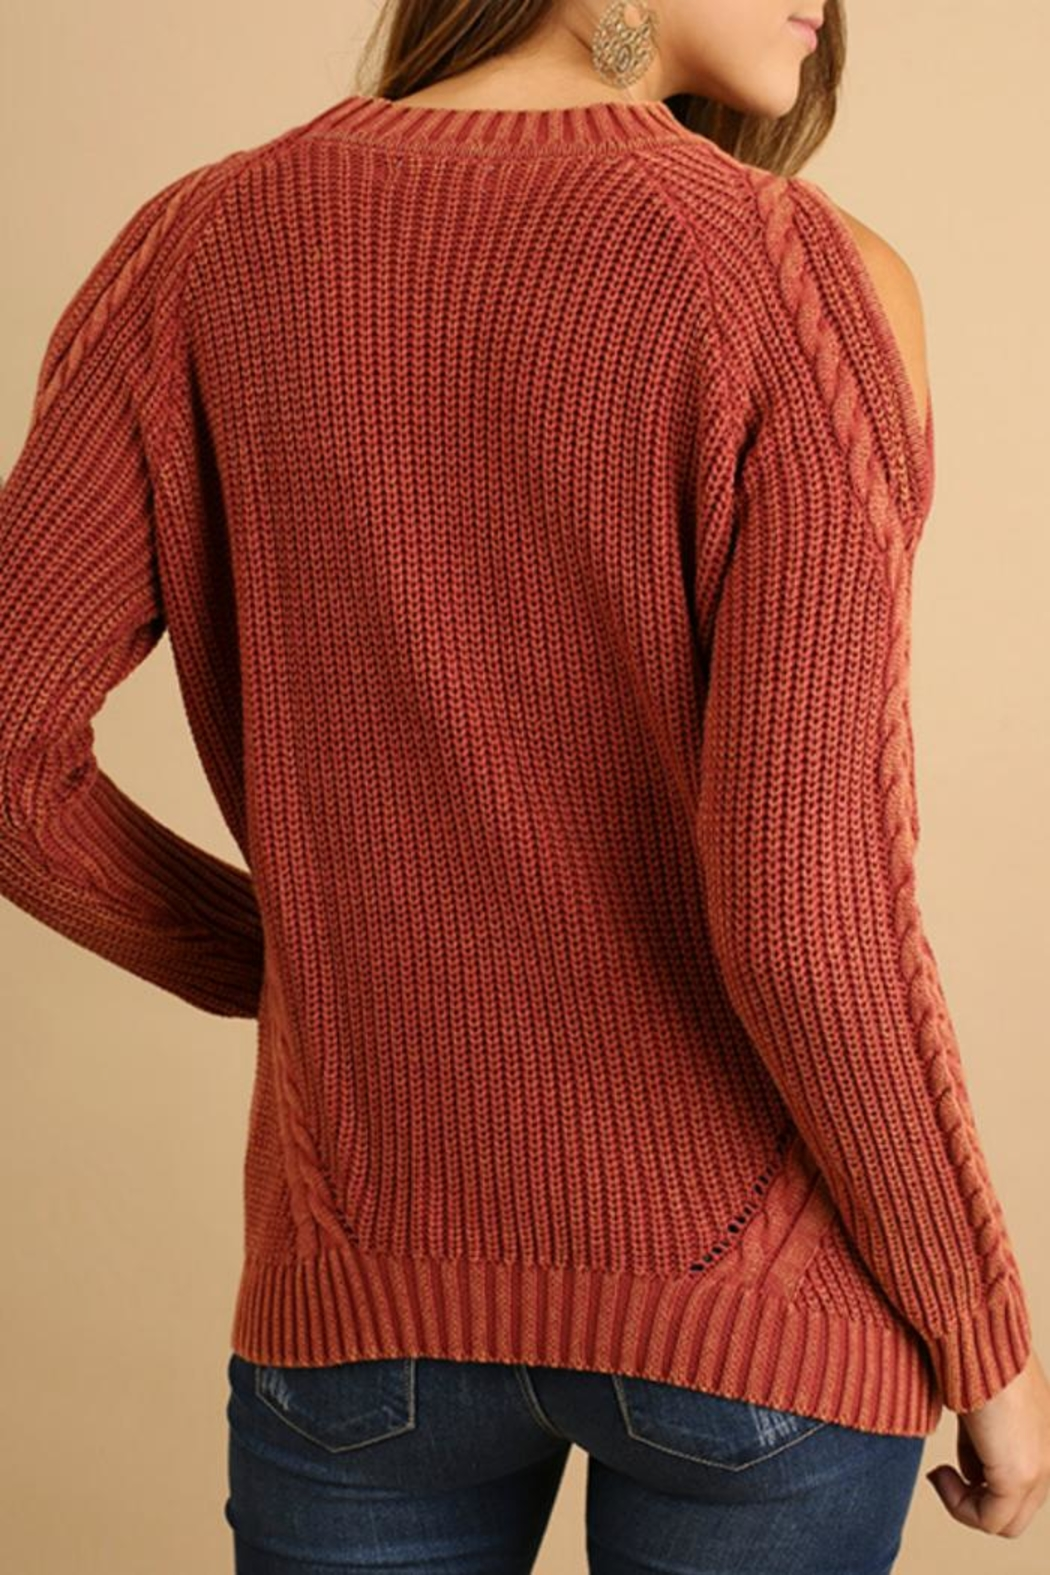 Umgee USA Cold-Shoulder Cable-Knit Sweater - Front Full Image